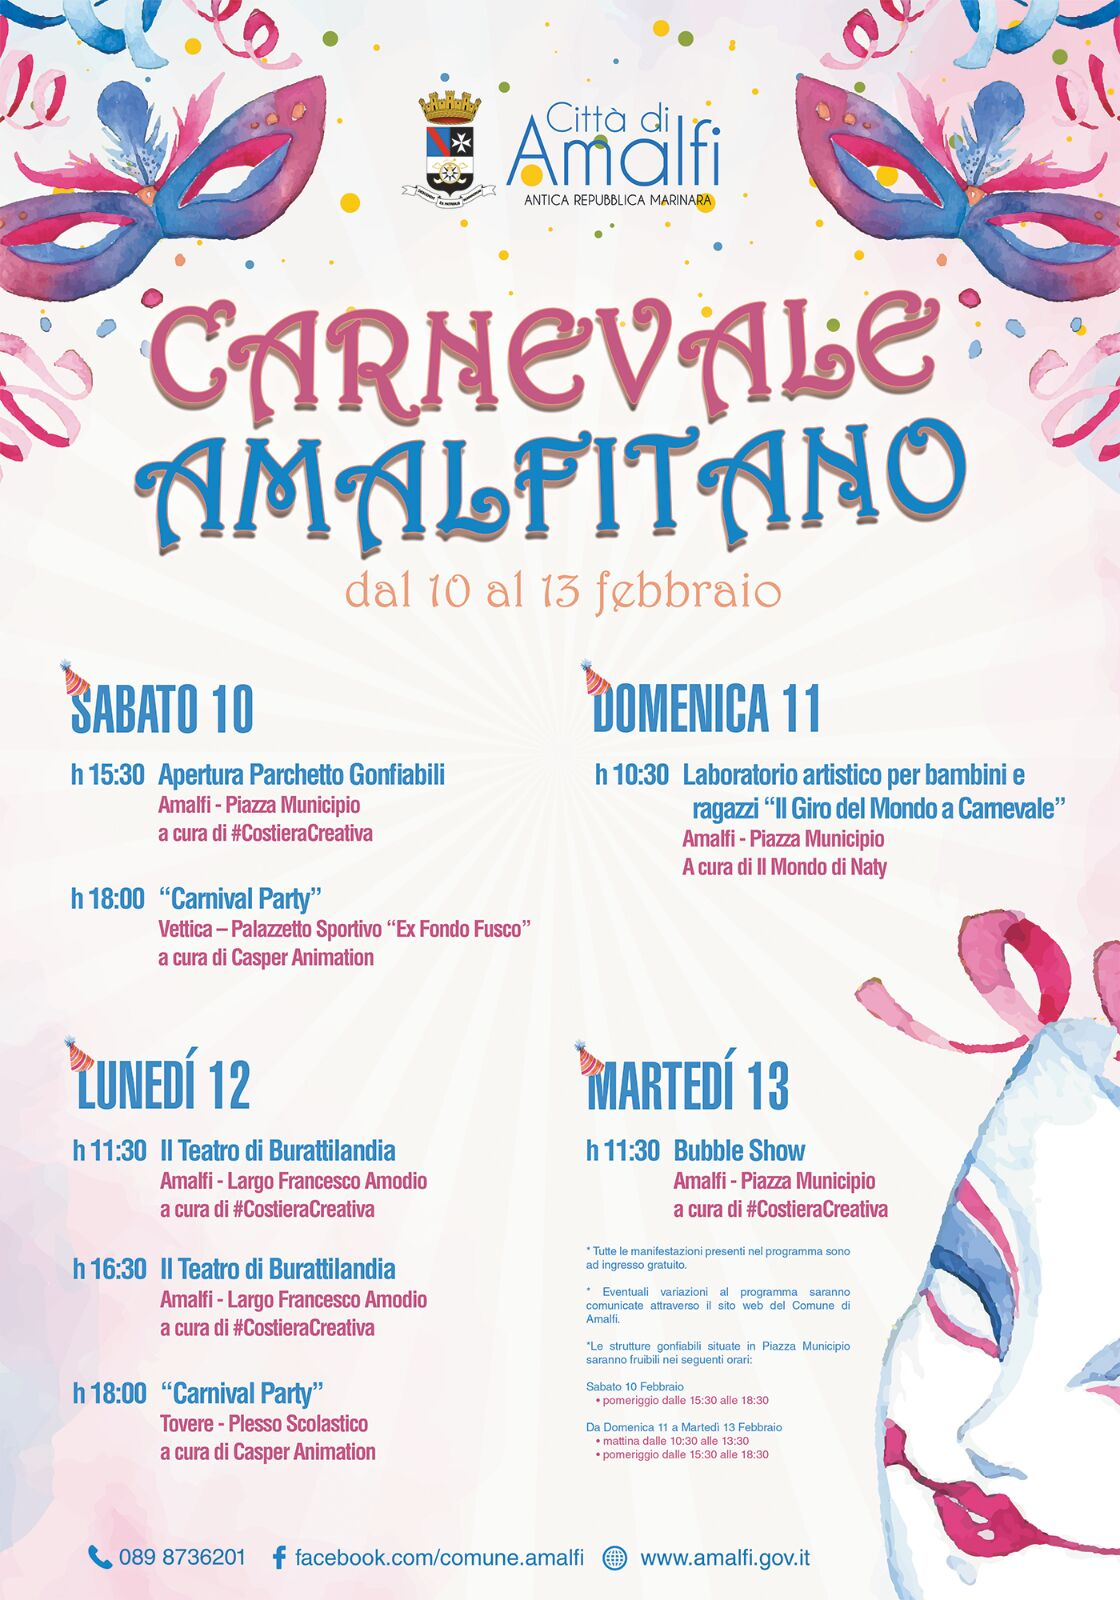 Free inflatables in Piazza Municipio for the Amalfitano Carnival